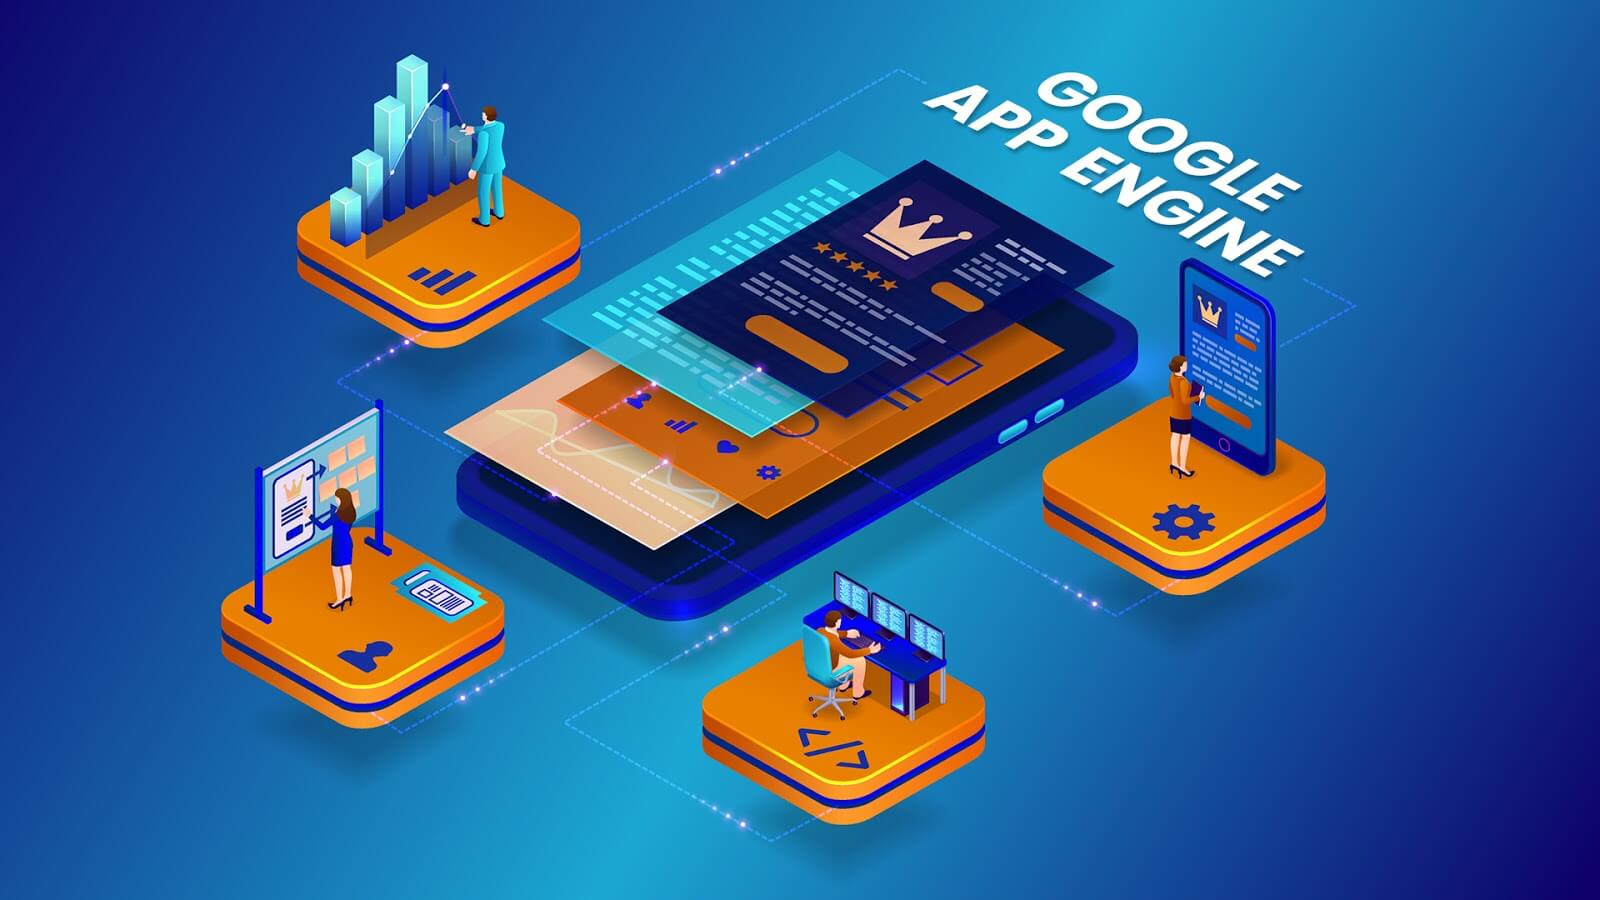 The Ultimate Guide to Google App Engine for 2020